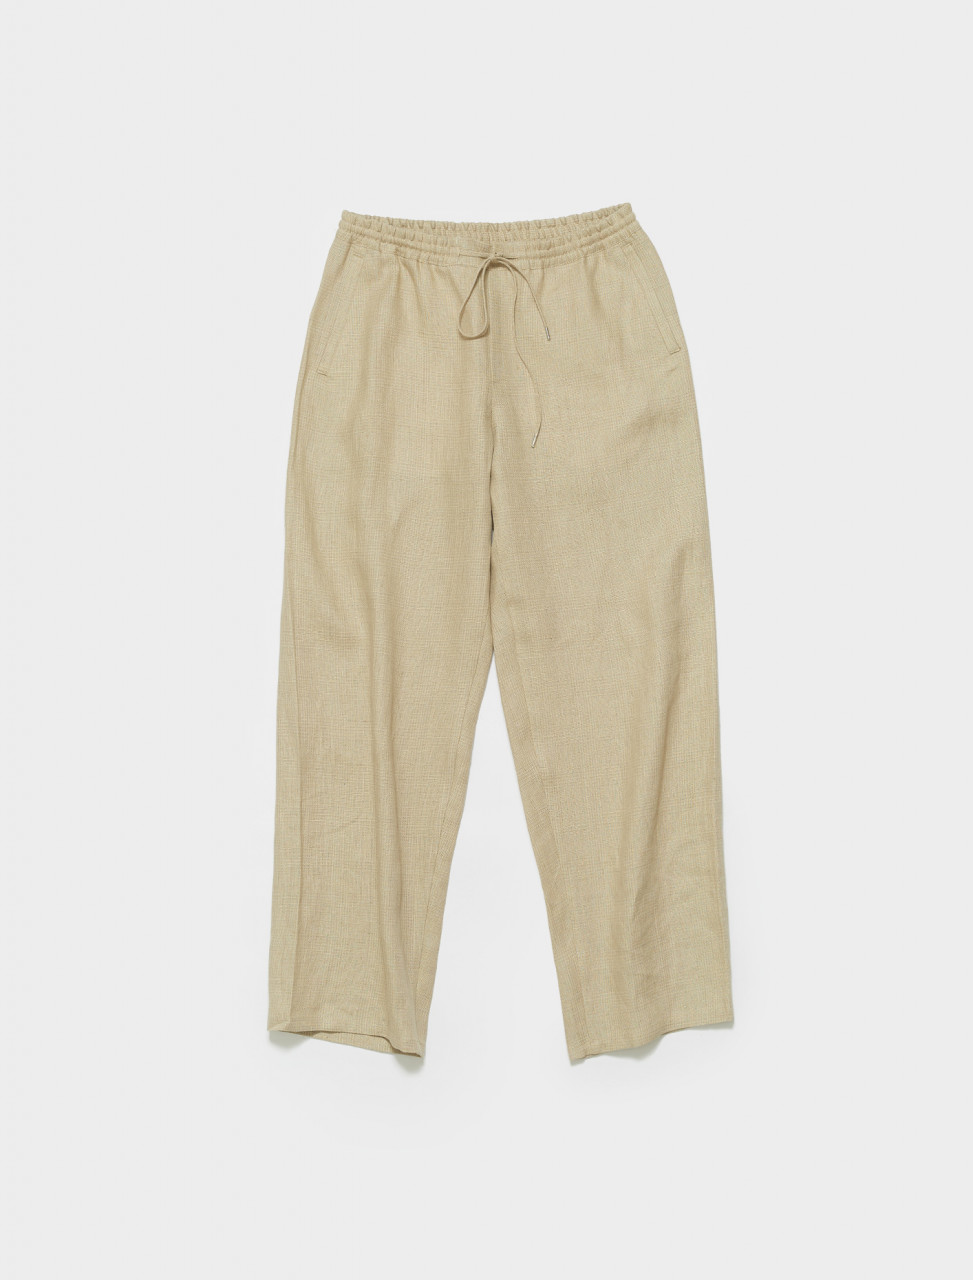 205-807-107 A KIND OF GUISE SAMURAI TROUSERS DESERT CHECK